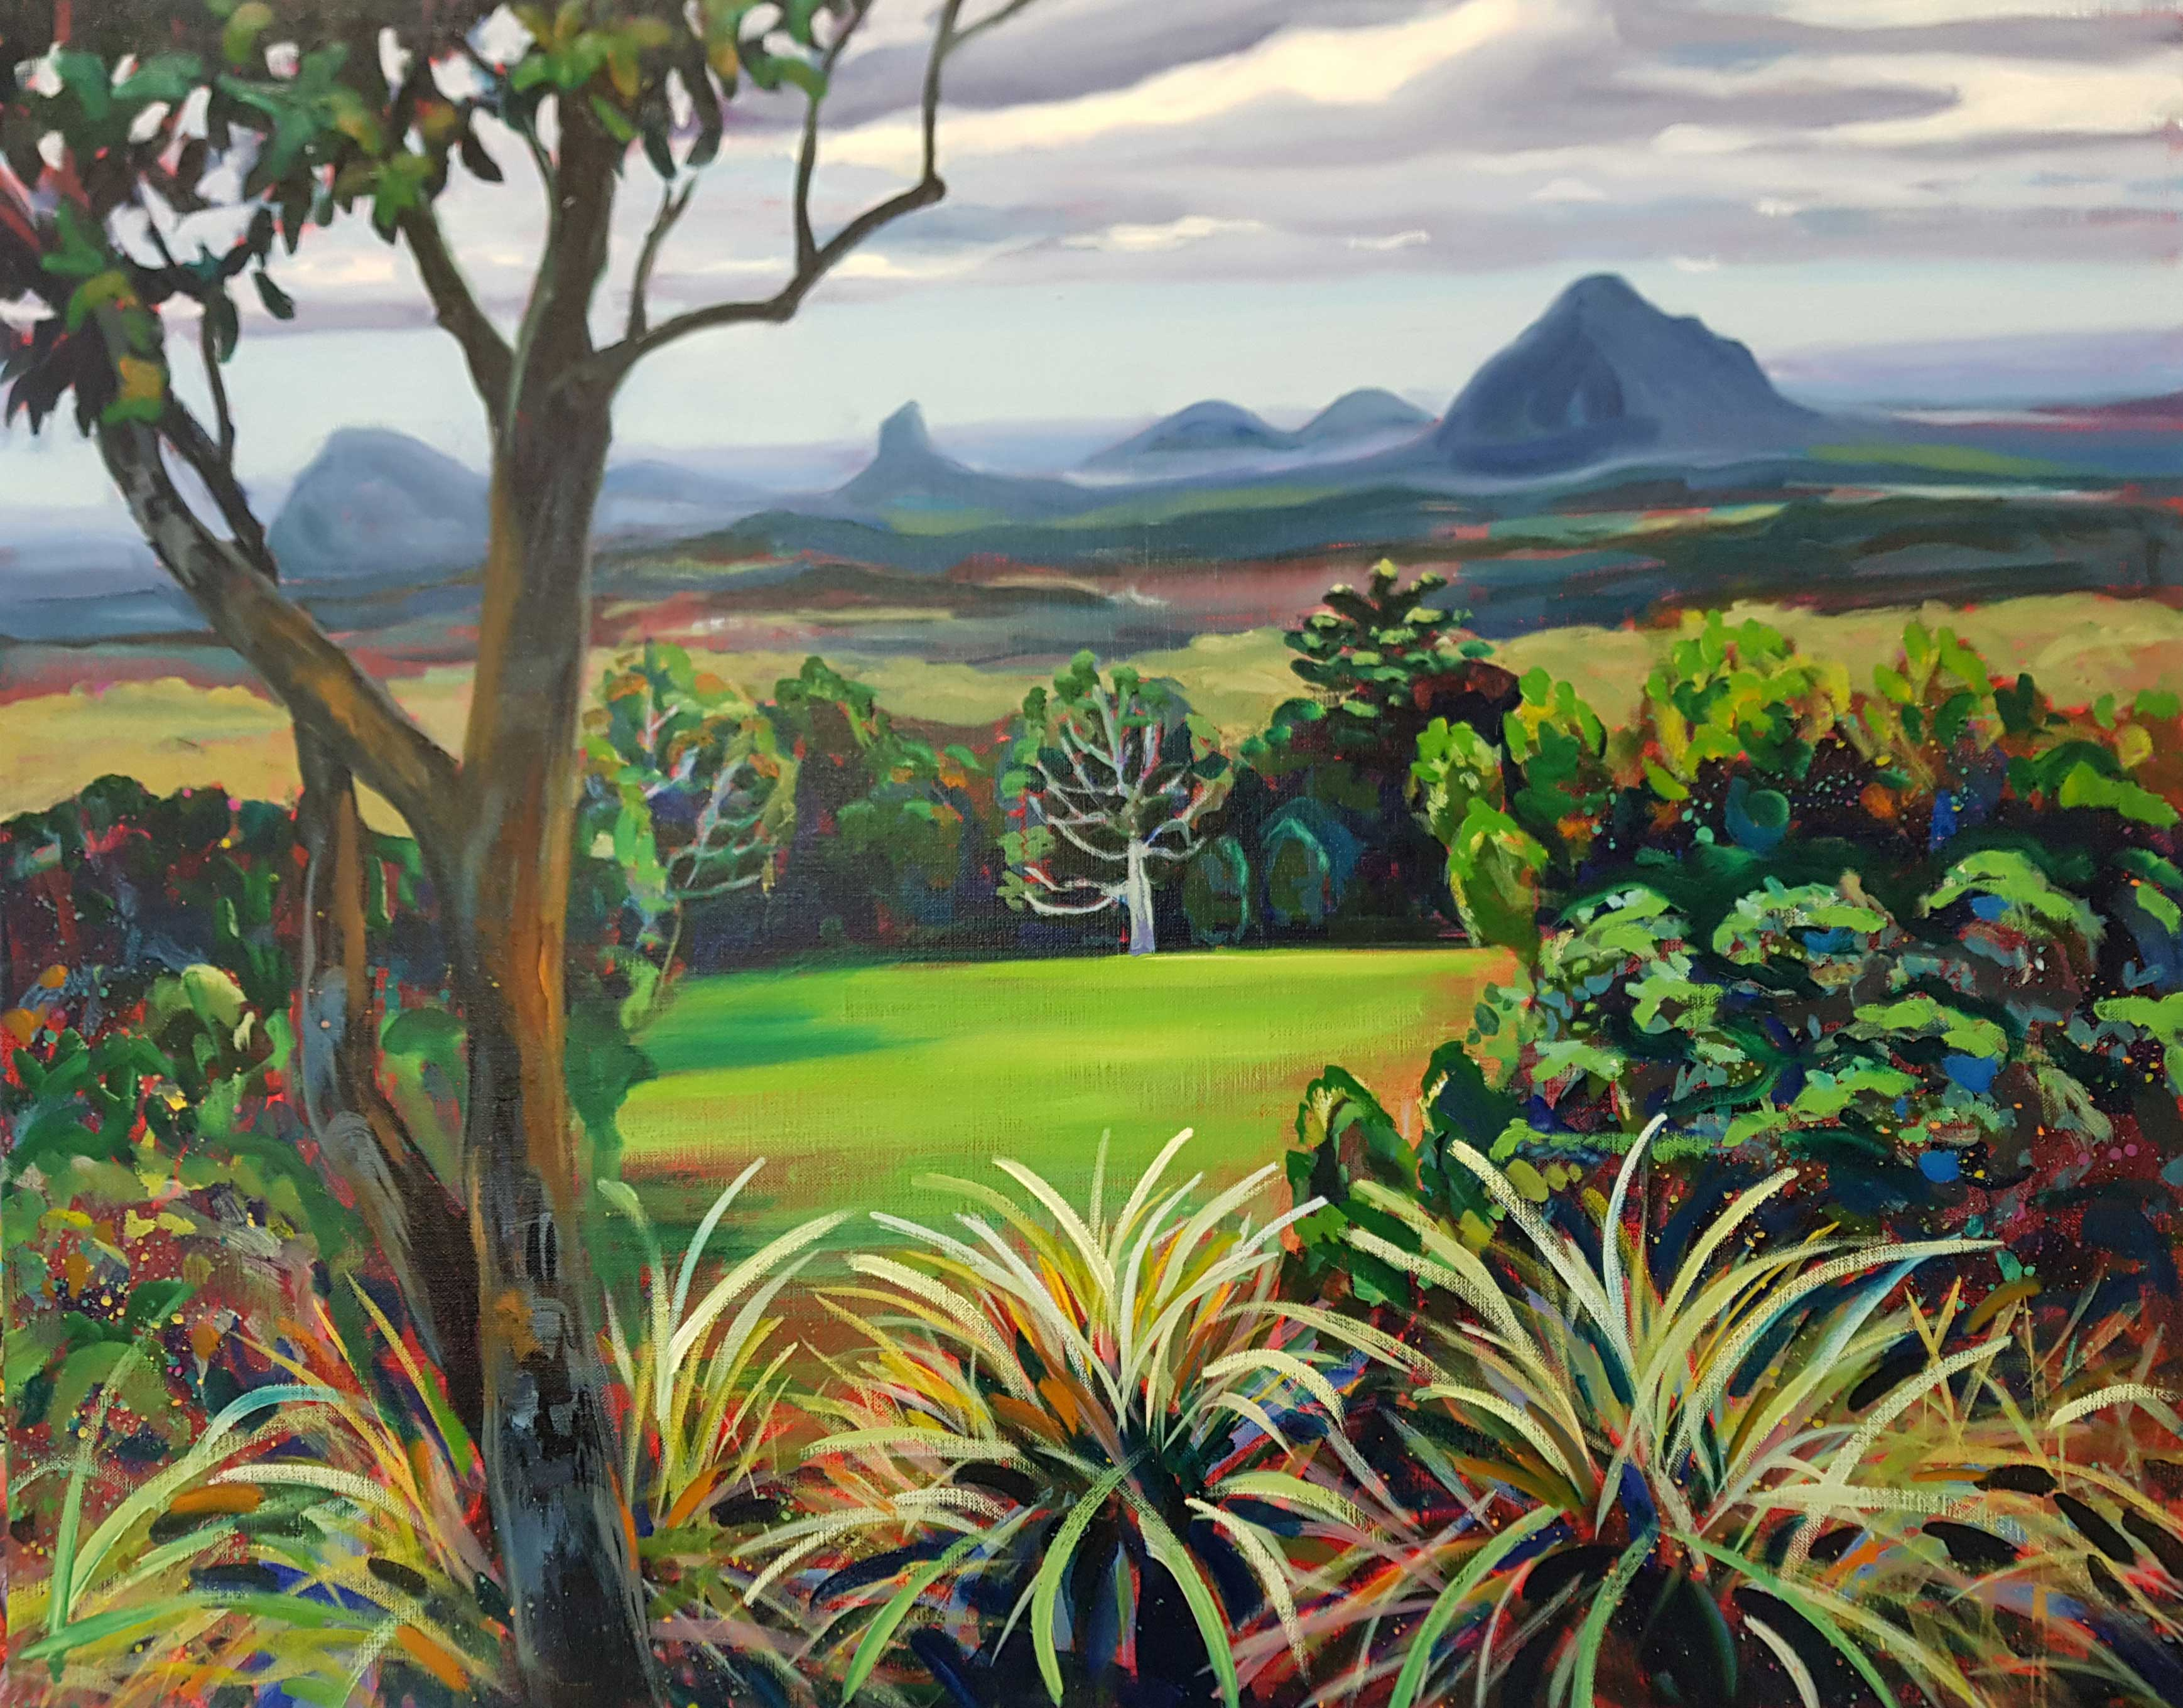 Layered view, Glasshouse Mts from Maleny